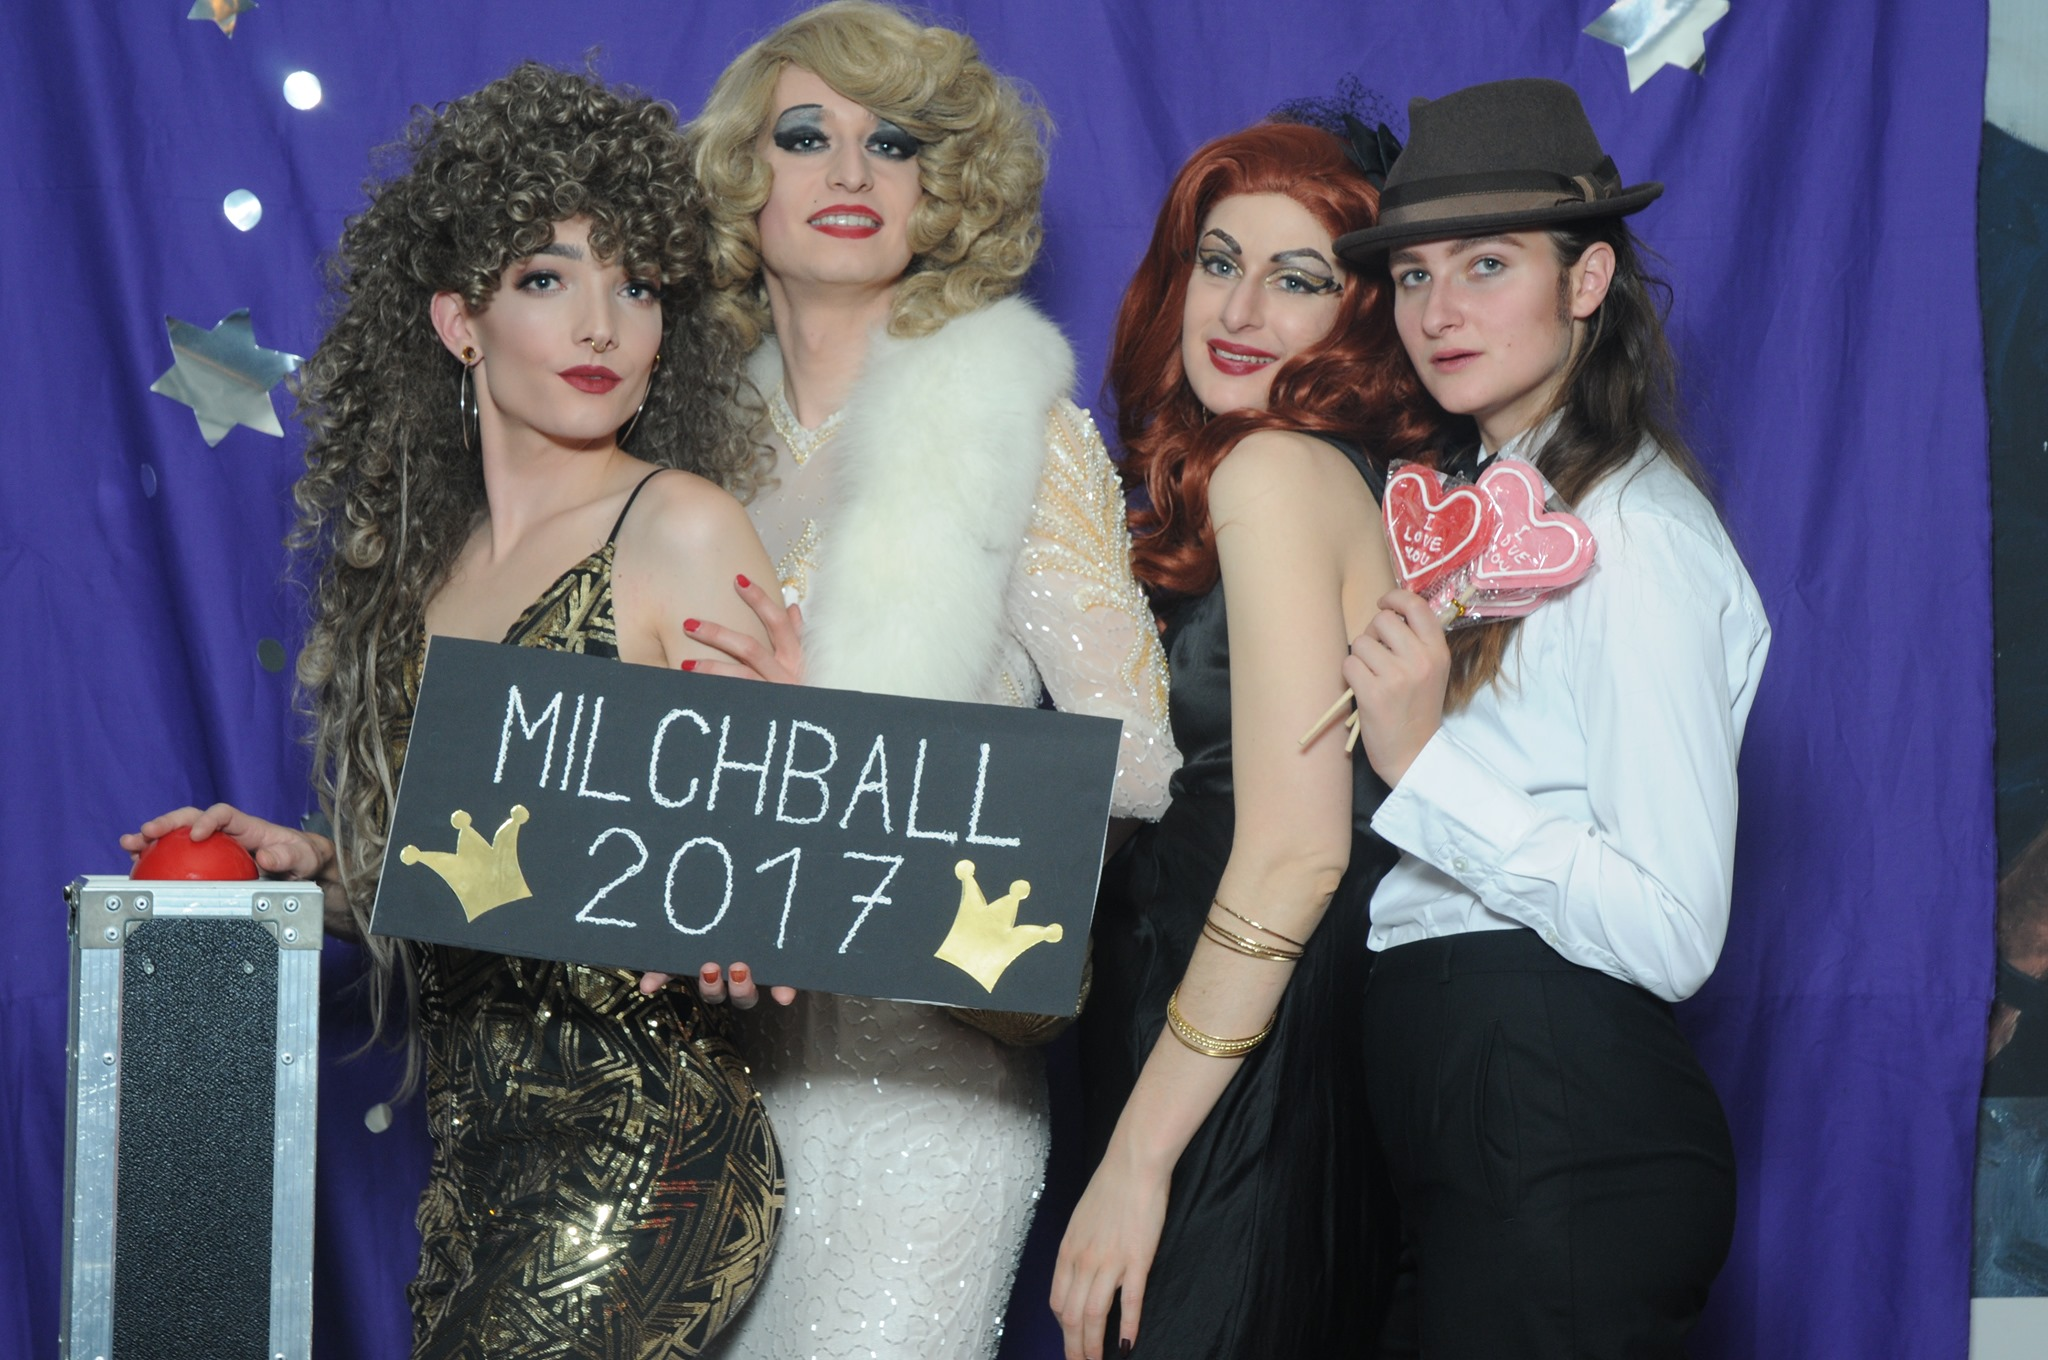 Milchball goes CAMP